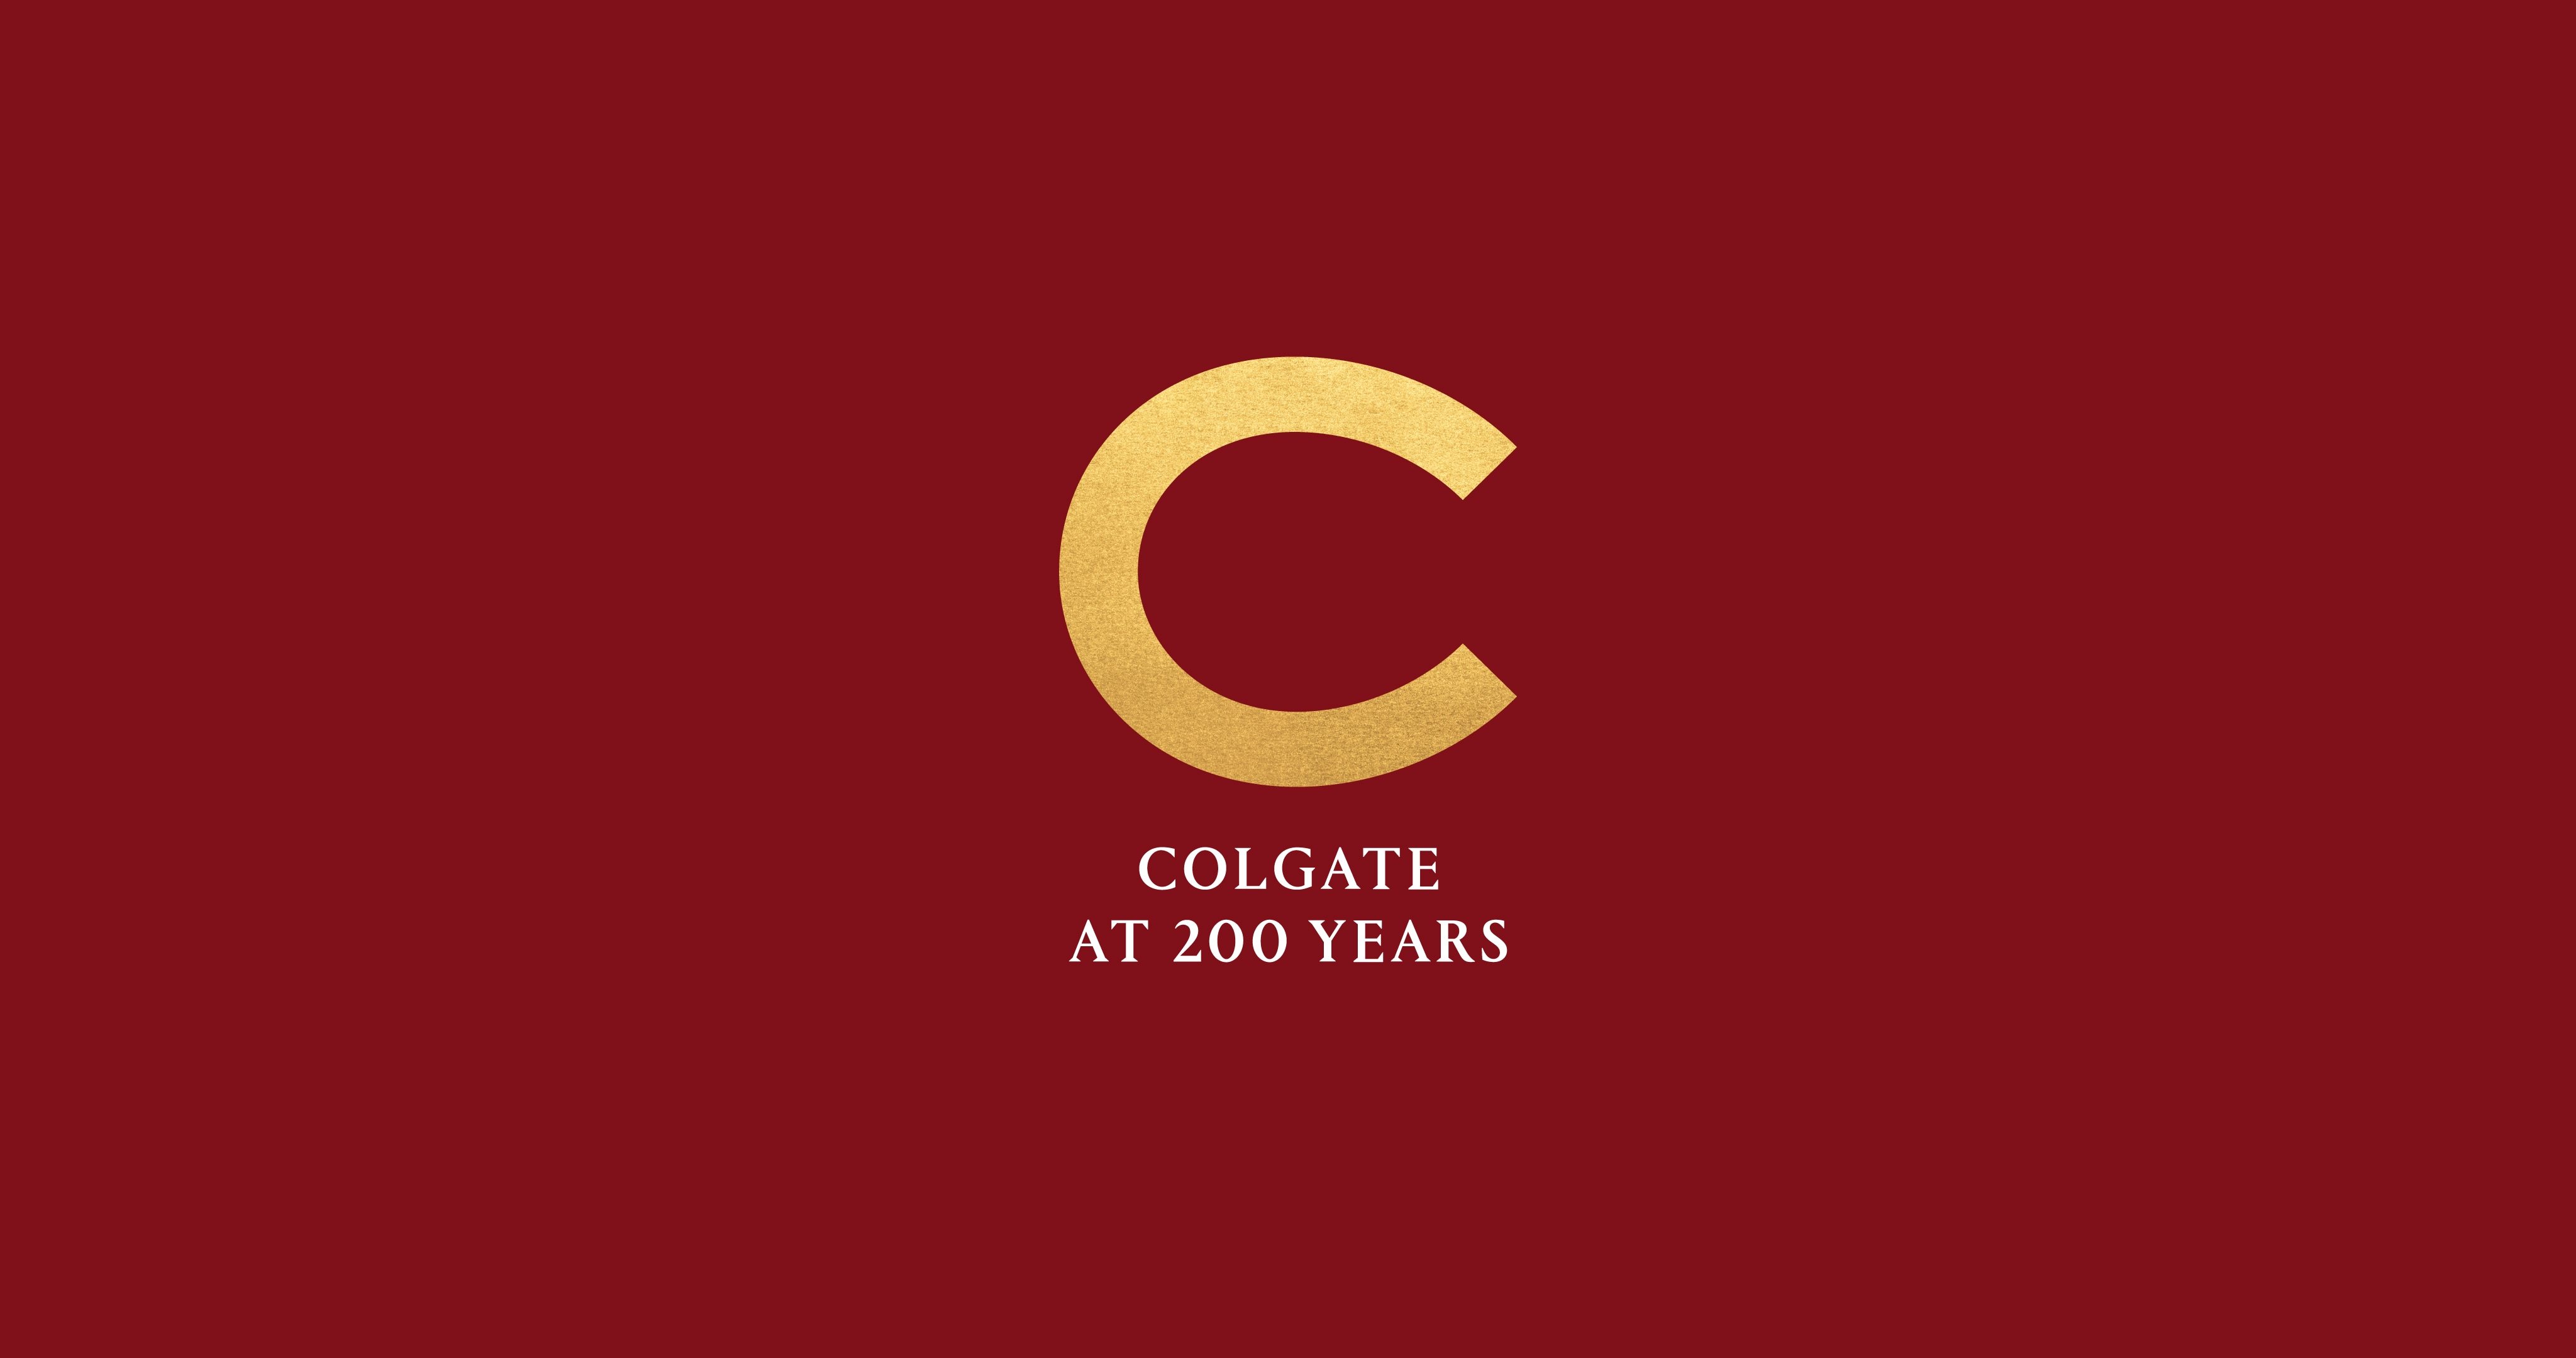 Colgate at 200 Years and logo over a maroon background